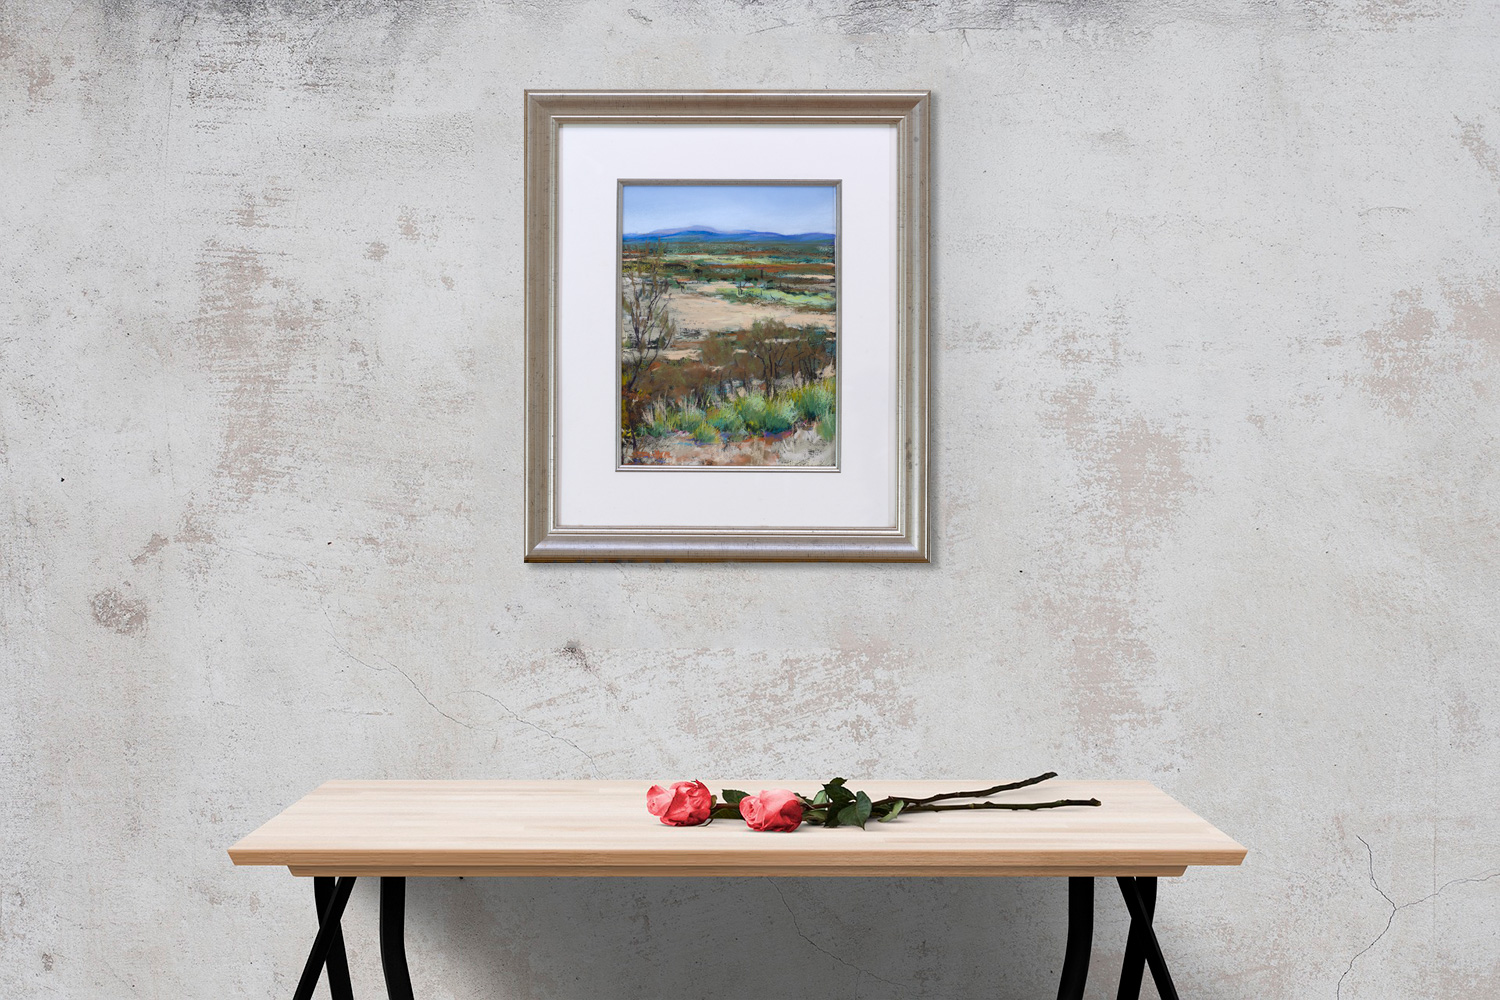 Towards the Barlee Ranges Framed on a wall